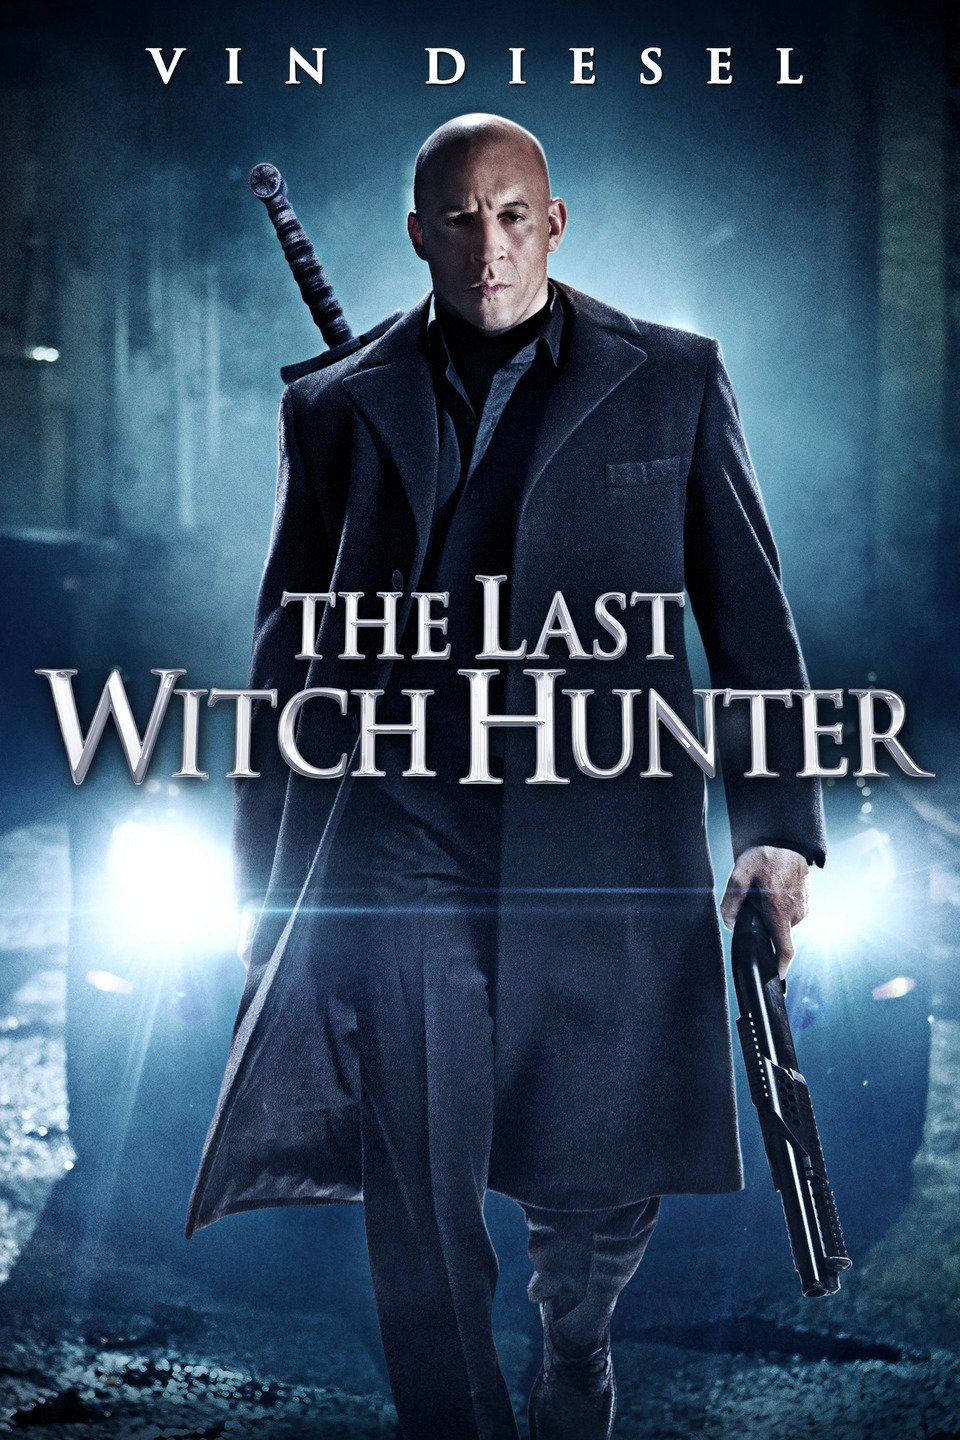 Download Film The Last Witch Hunter 2015 Bluray Subtitle Indonesia